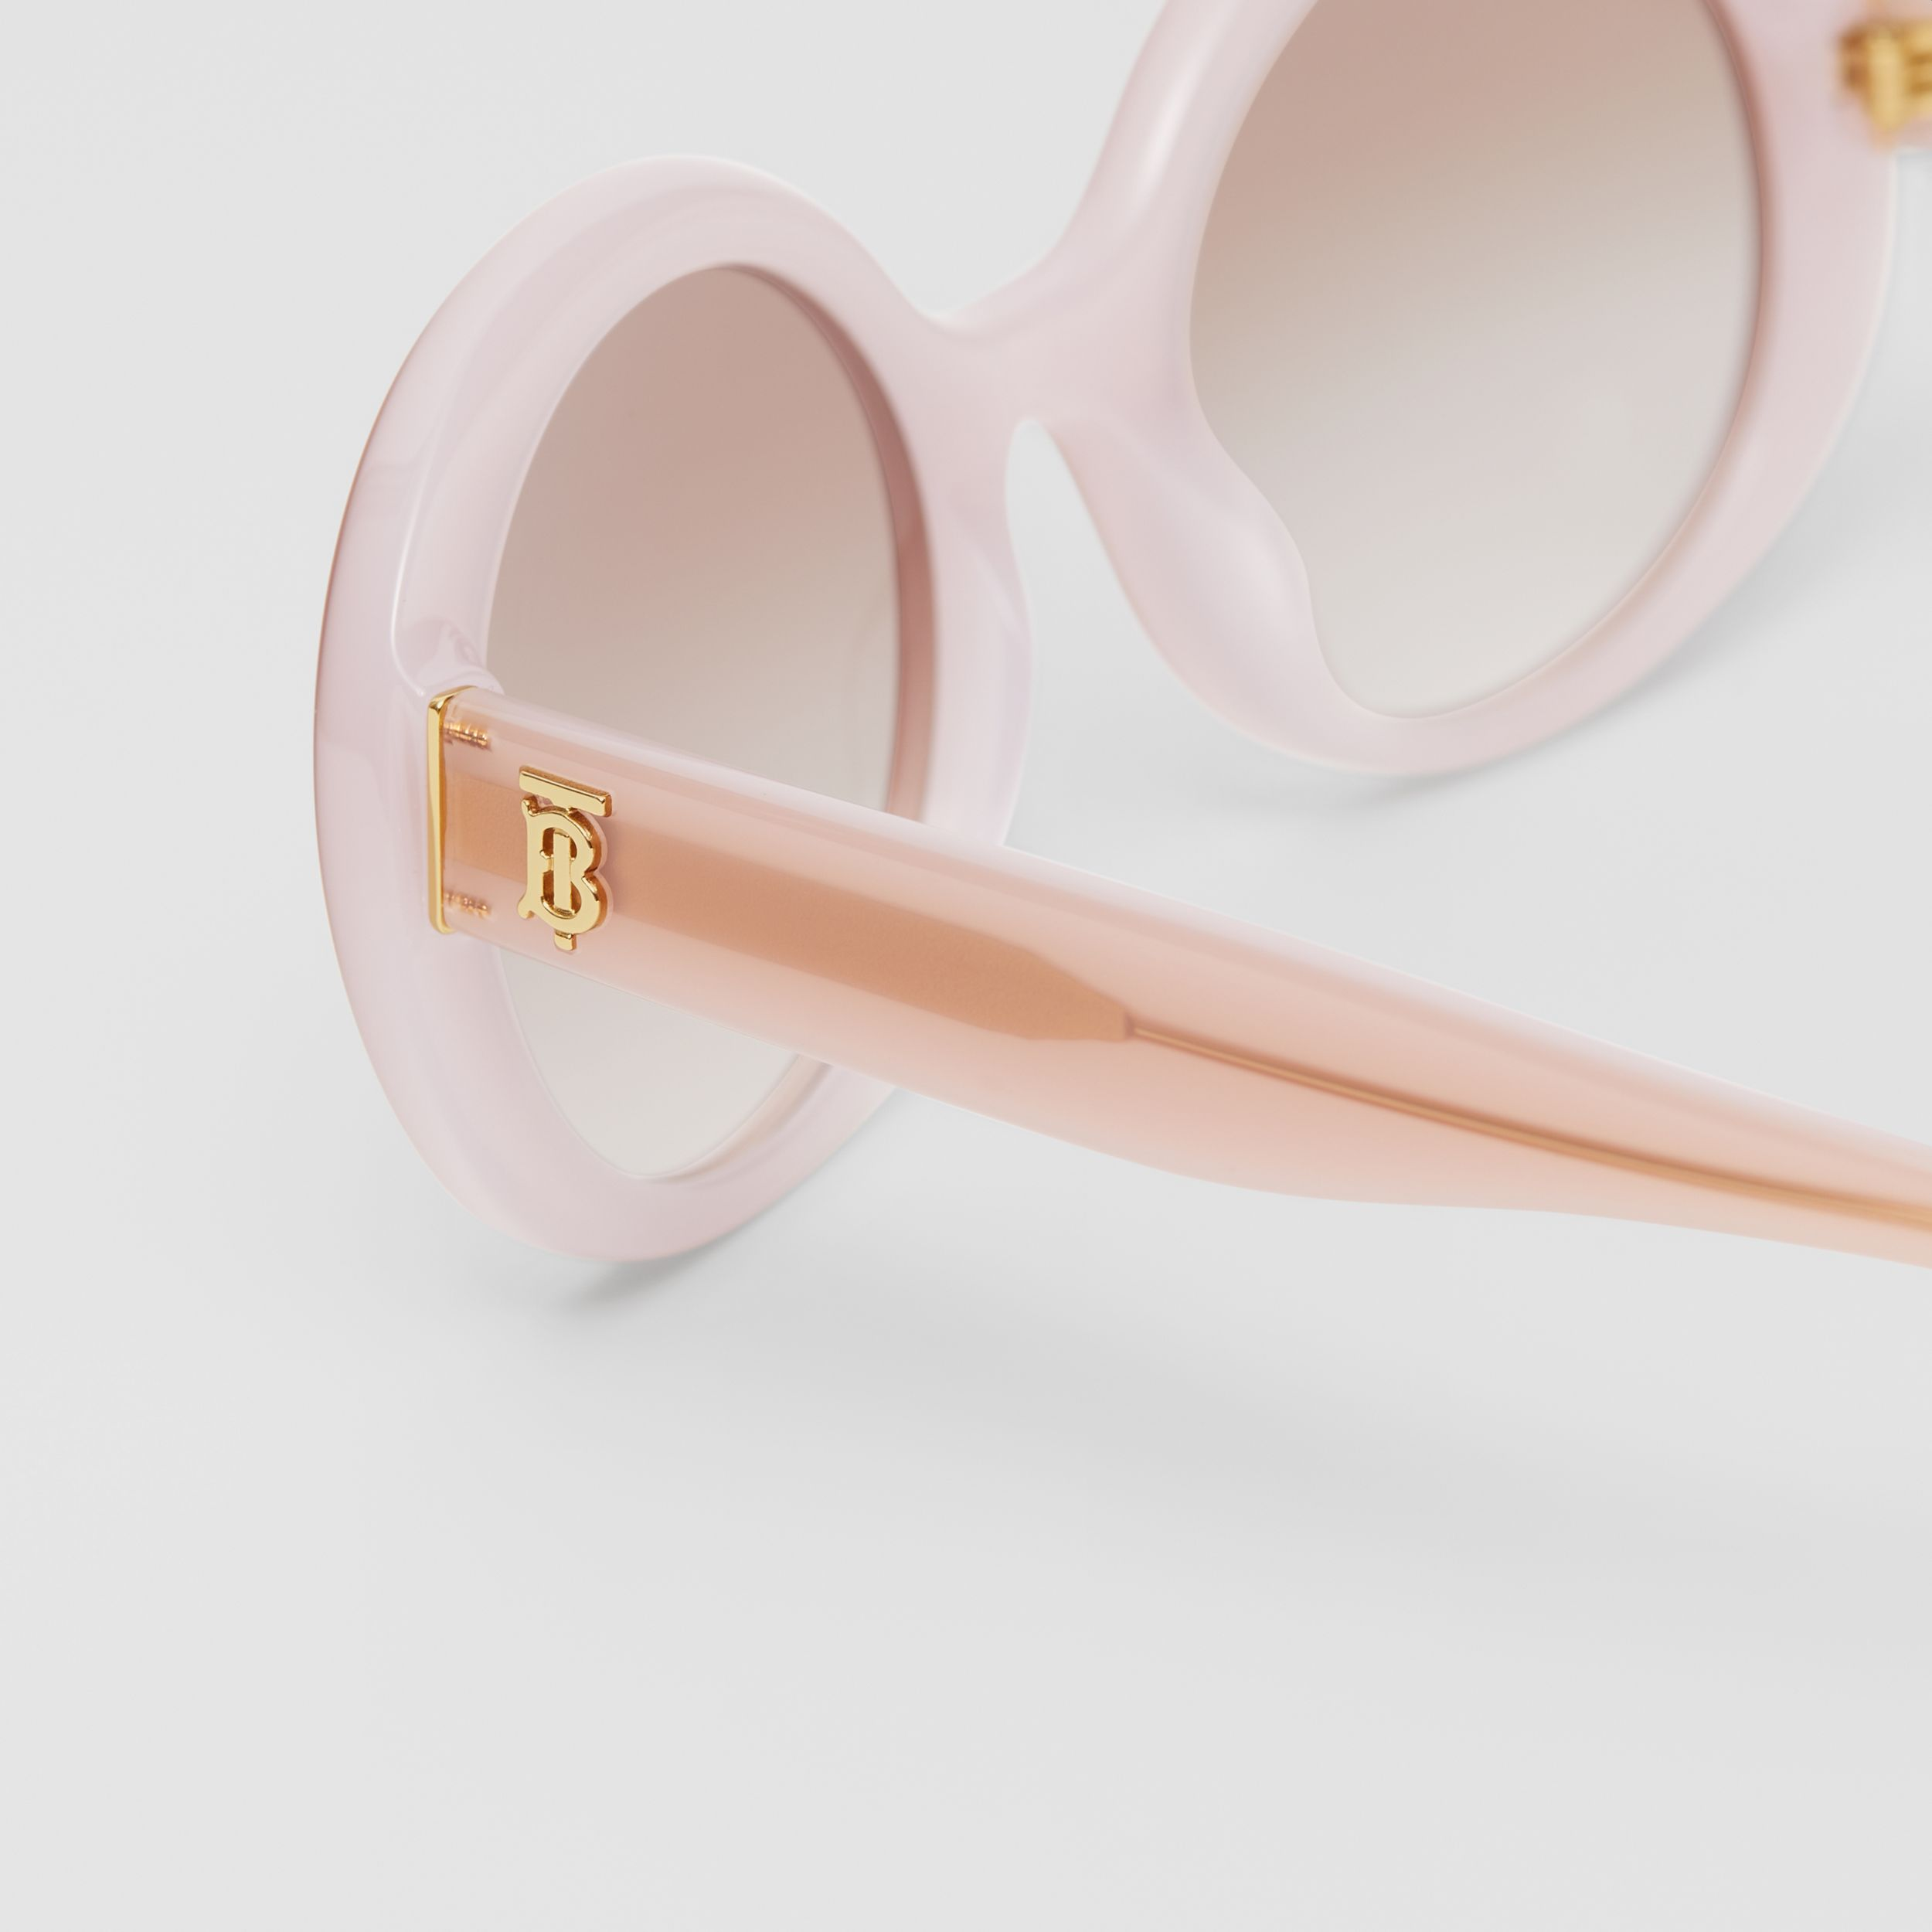 Oversized Round Frame Sunglasses in Opal Pink - Women | Burberry Canada - 2